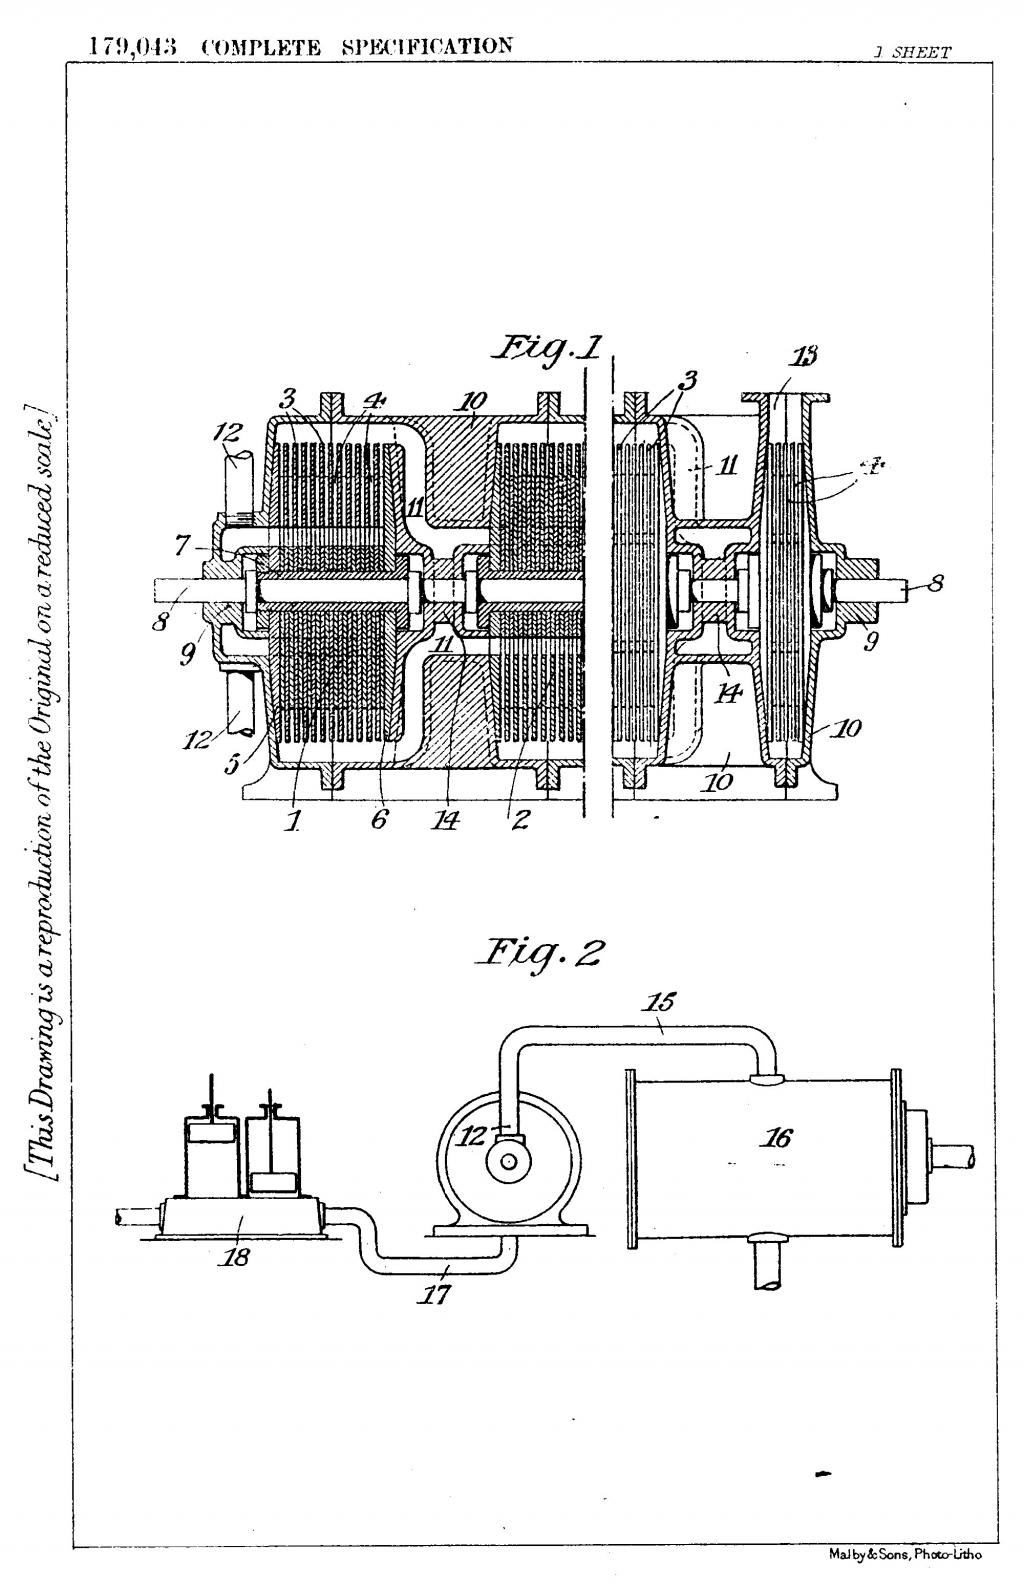 Nikola Tesla British Patent 179,043 - Improved Process of and Apparatus for Production of High Vacua - Image 1